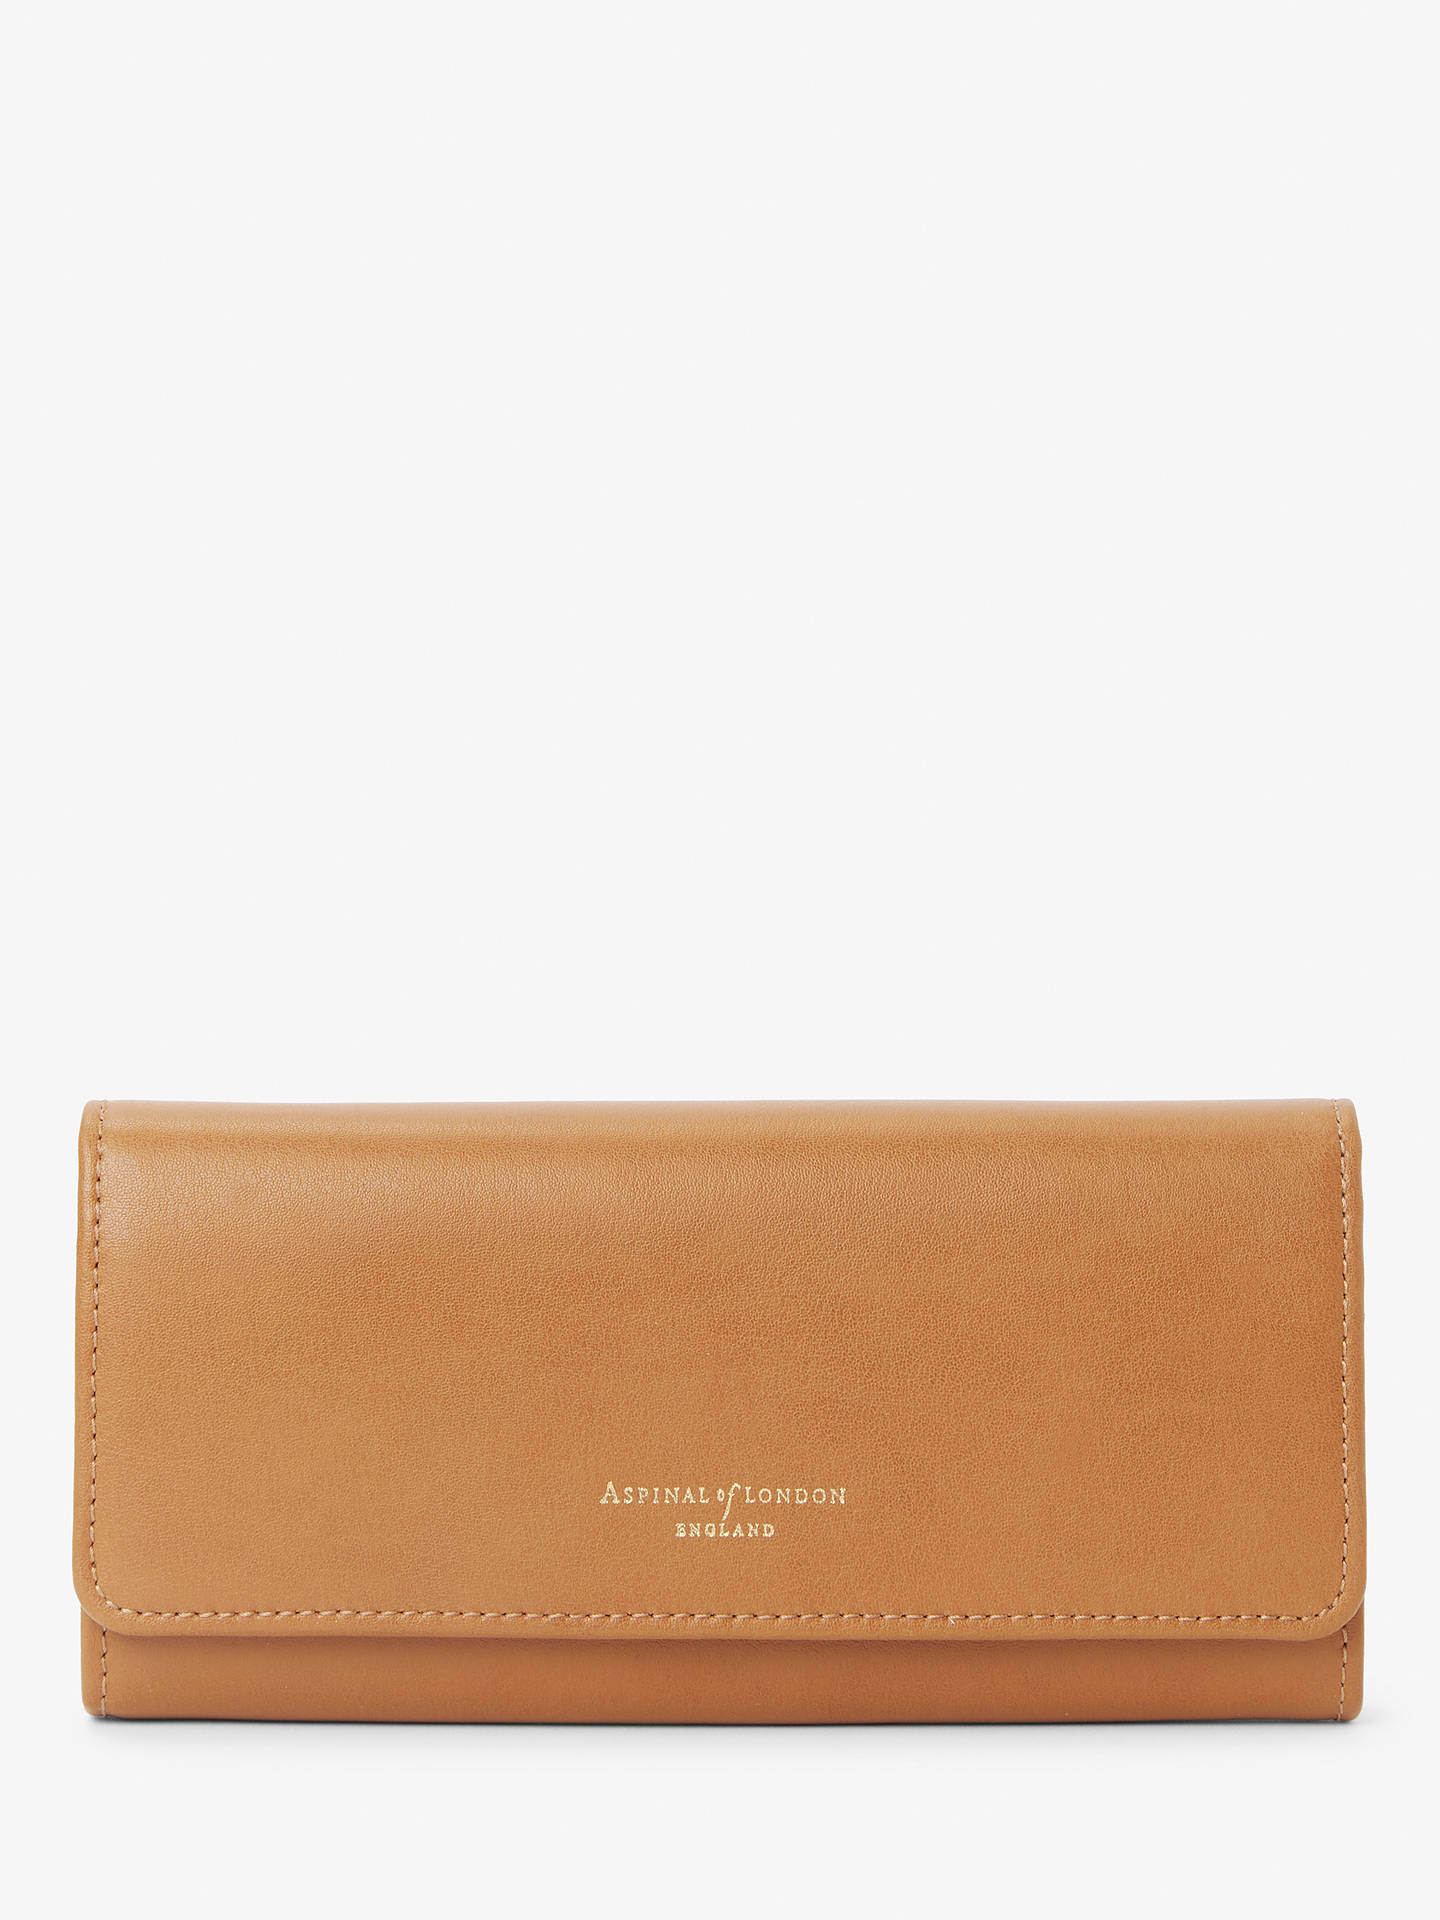 Aspinal of London Lottie Leather Purse, Smooth Tan